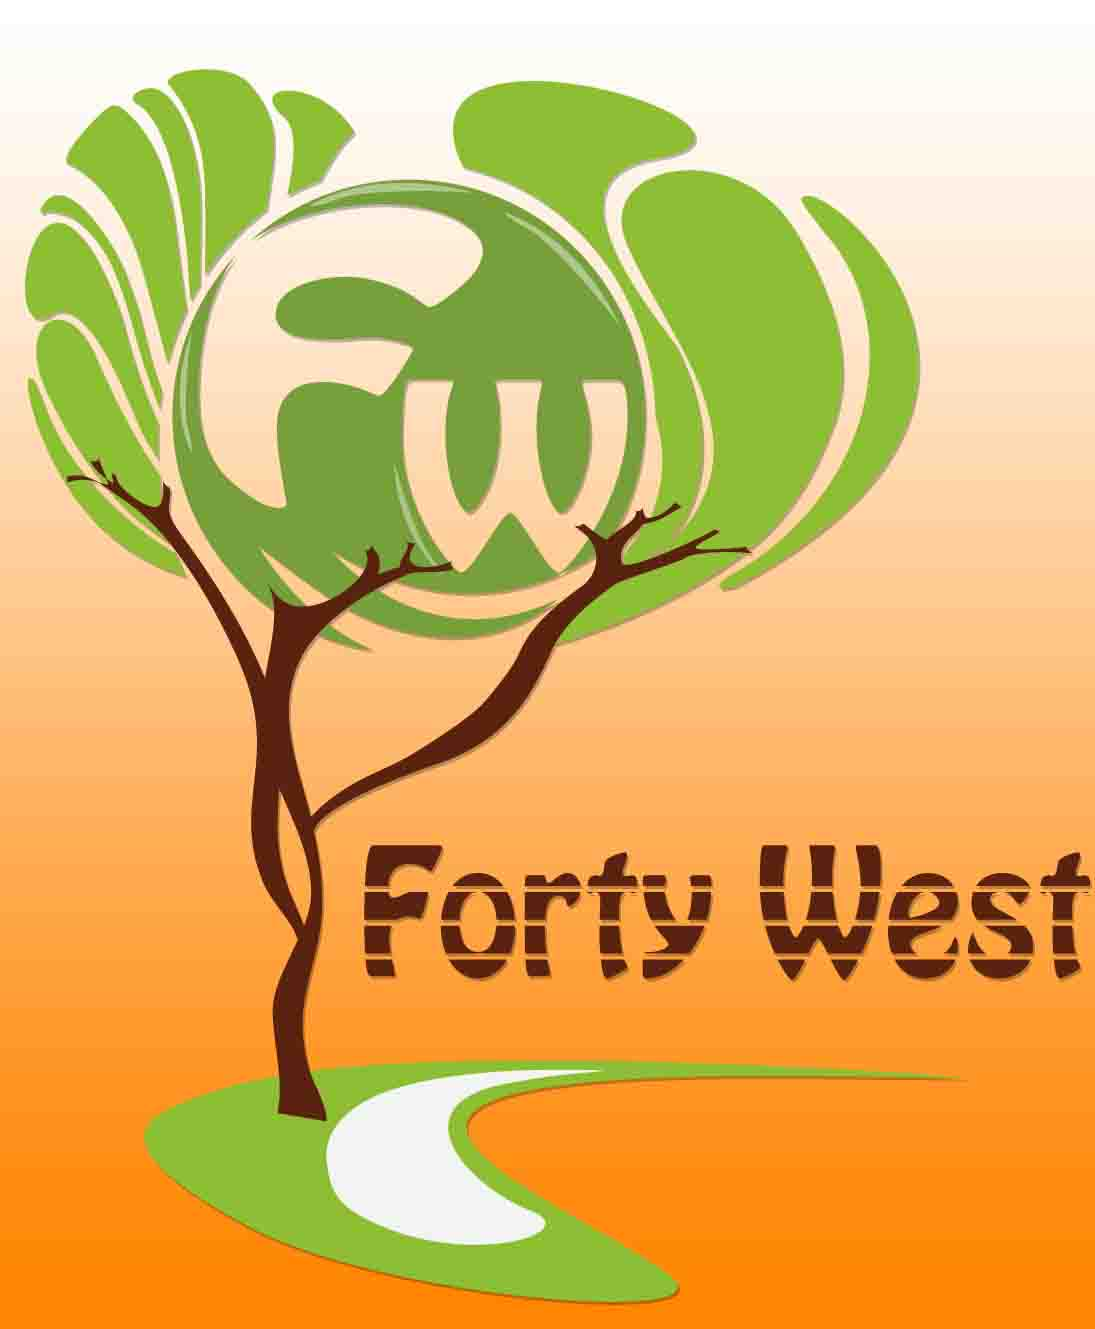 Logo Design by Aj Ong - Entry No. 66 in the Logo Design Contest Unique Logo Design Wanted for Forty West.